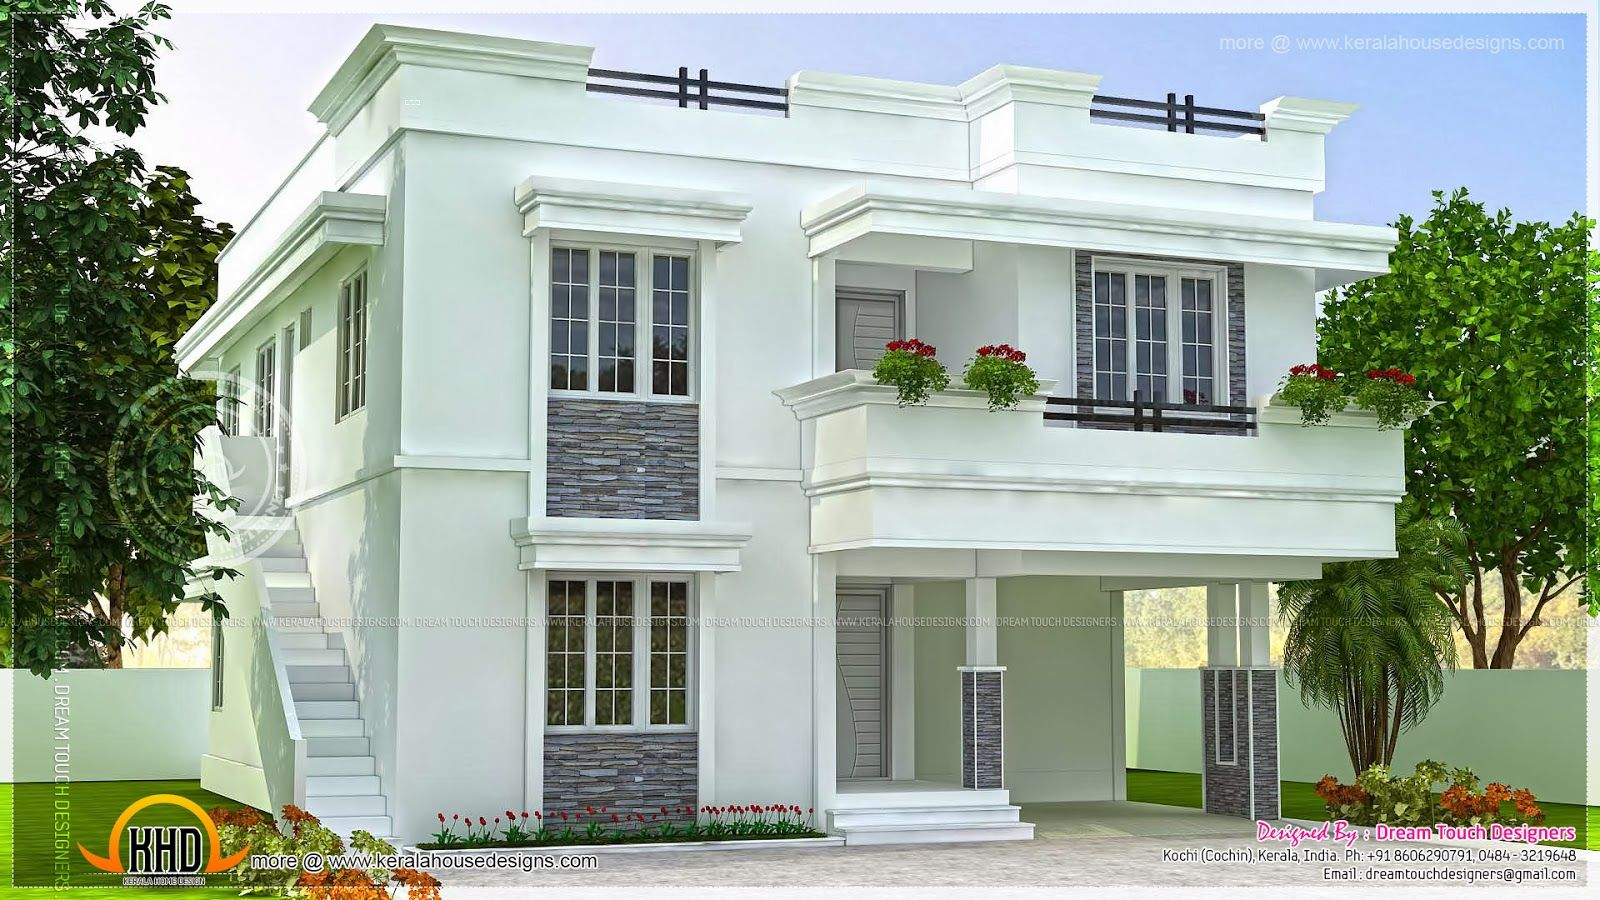 Modern beautiful home modern beautiful home design indian Beautiful interior home designs